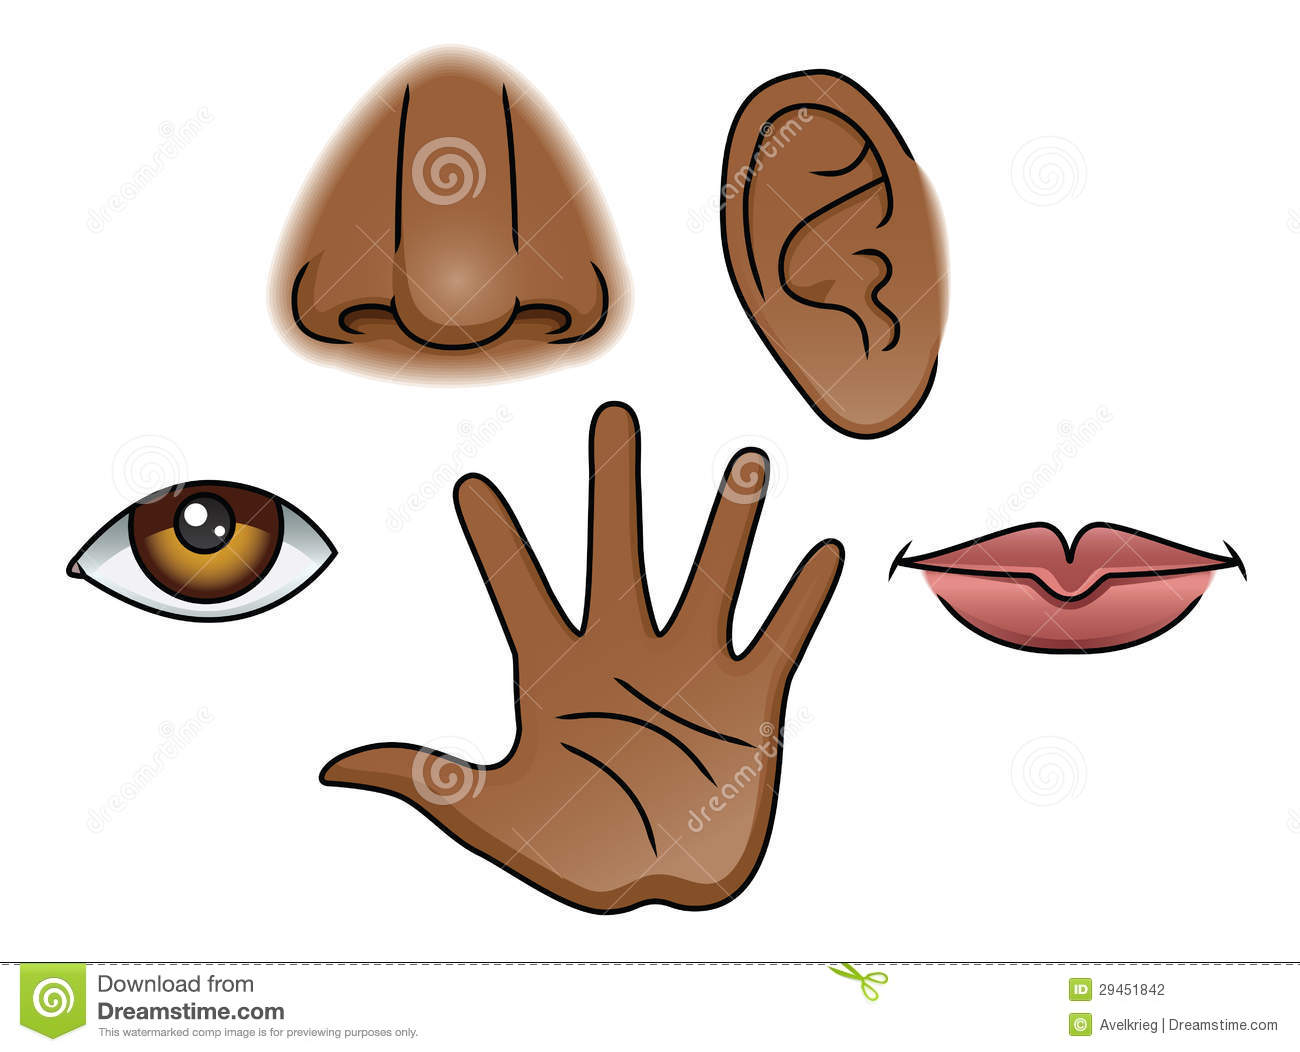 The Five Senses Royalty Free Stock Photography - Image: 38624147